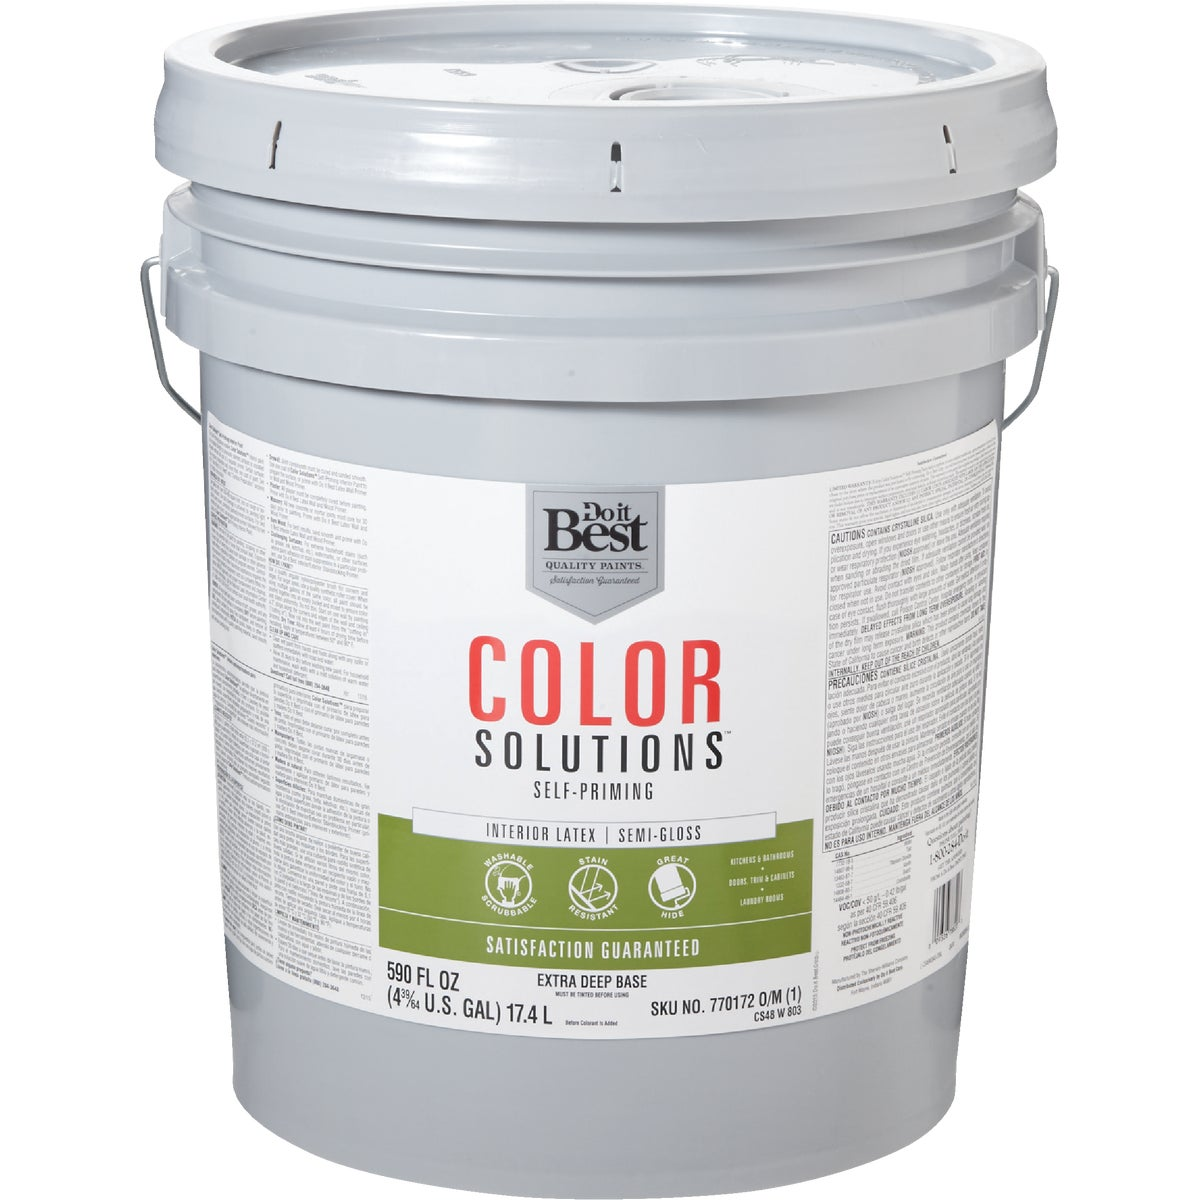 INT S/G EX DEEP BS PAINT - CS48W0803-20 by Do it Best